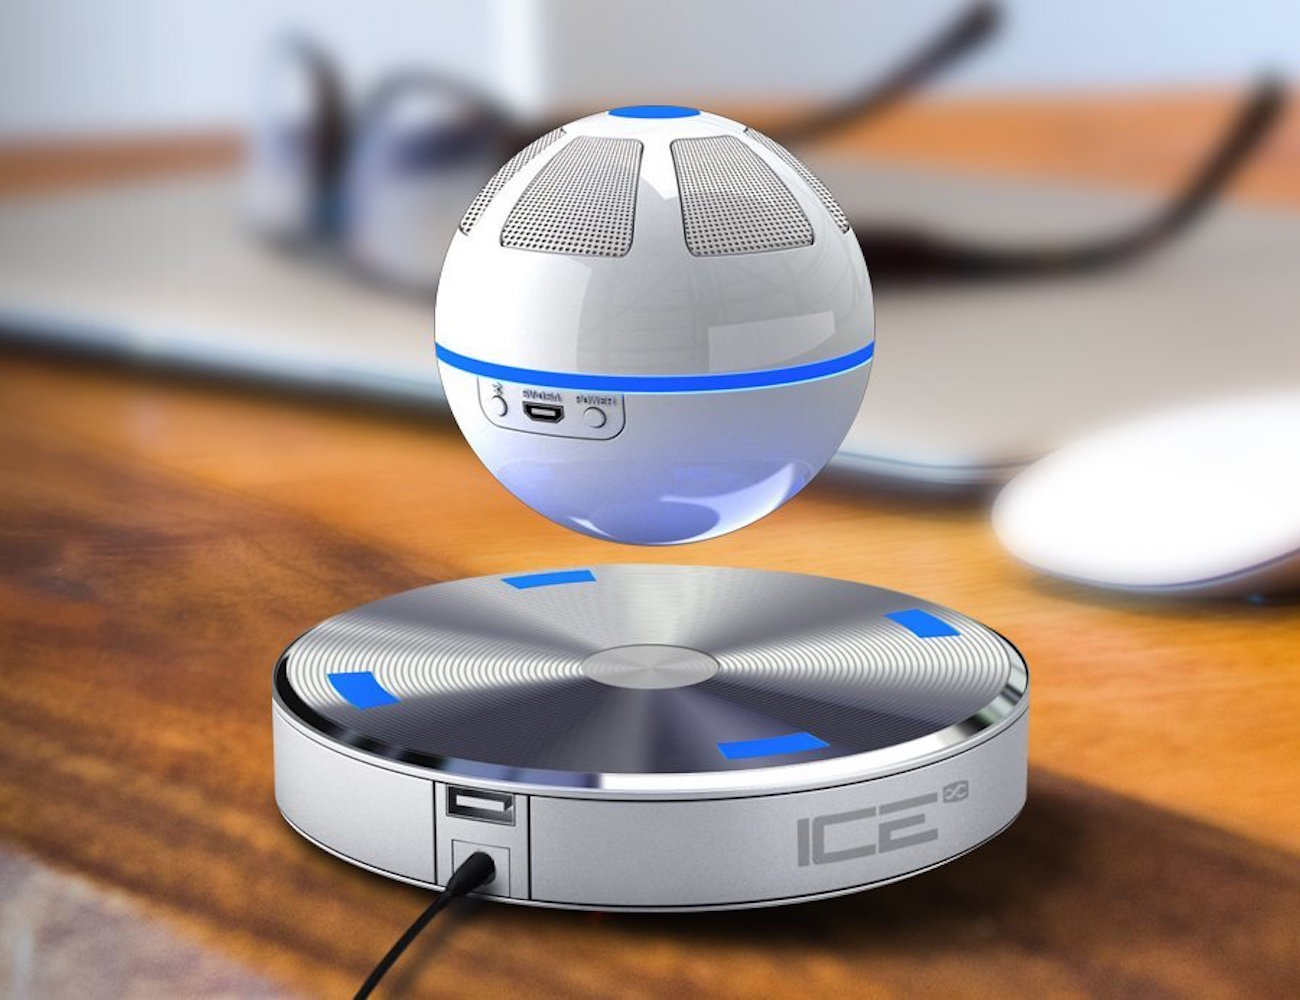 Cool Technology Gifts 2015 Iceorb Floating Bluetooth Speaker Review